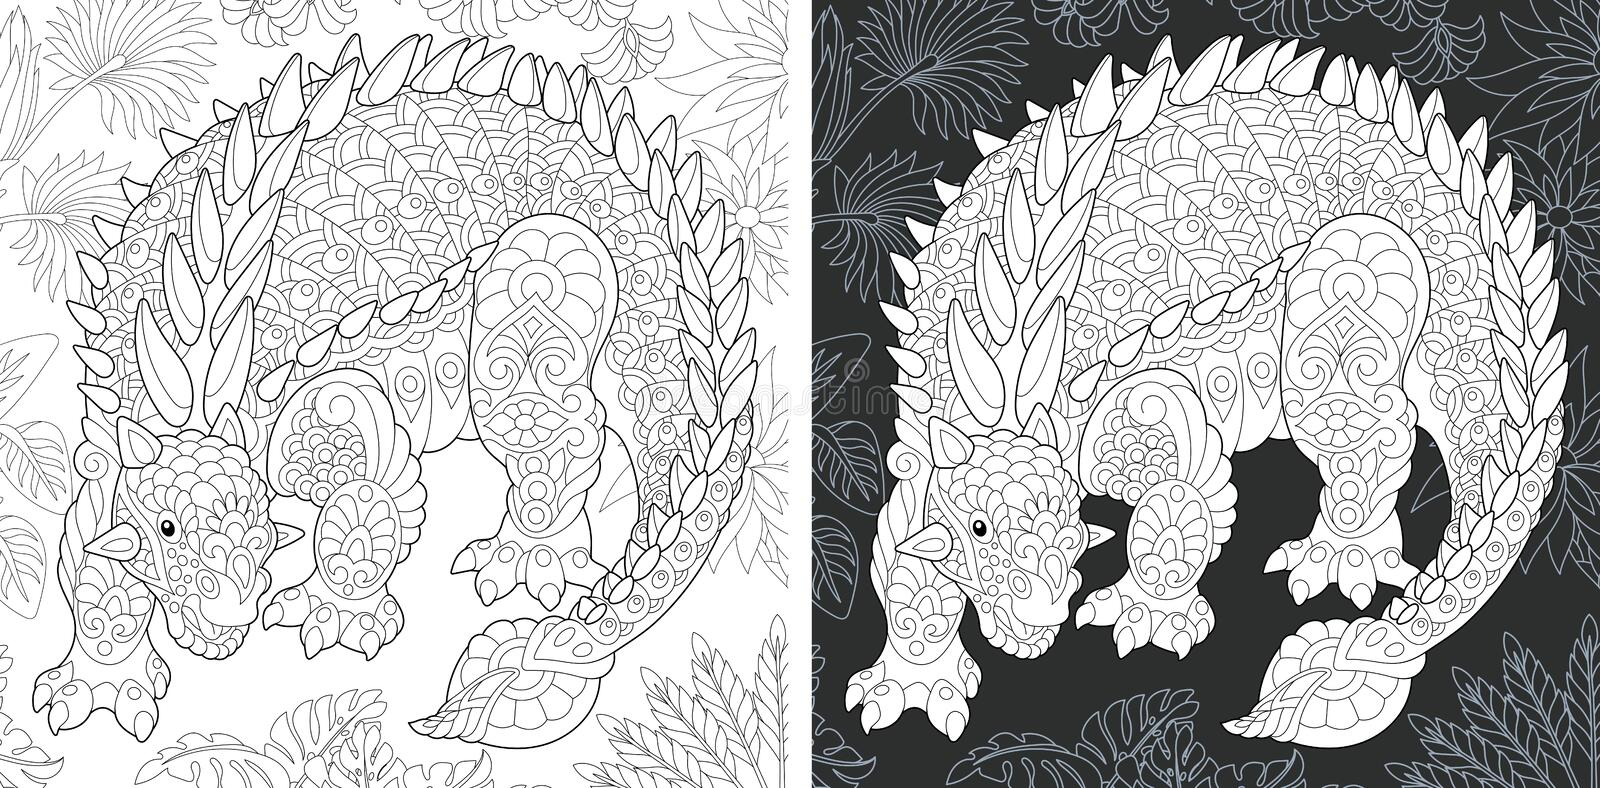 Coloring pages with Ankylosaurus royalty free stock photography